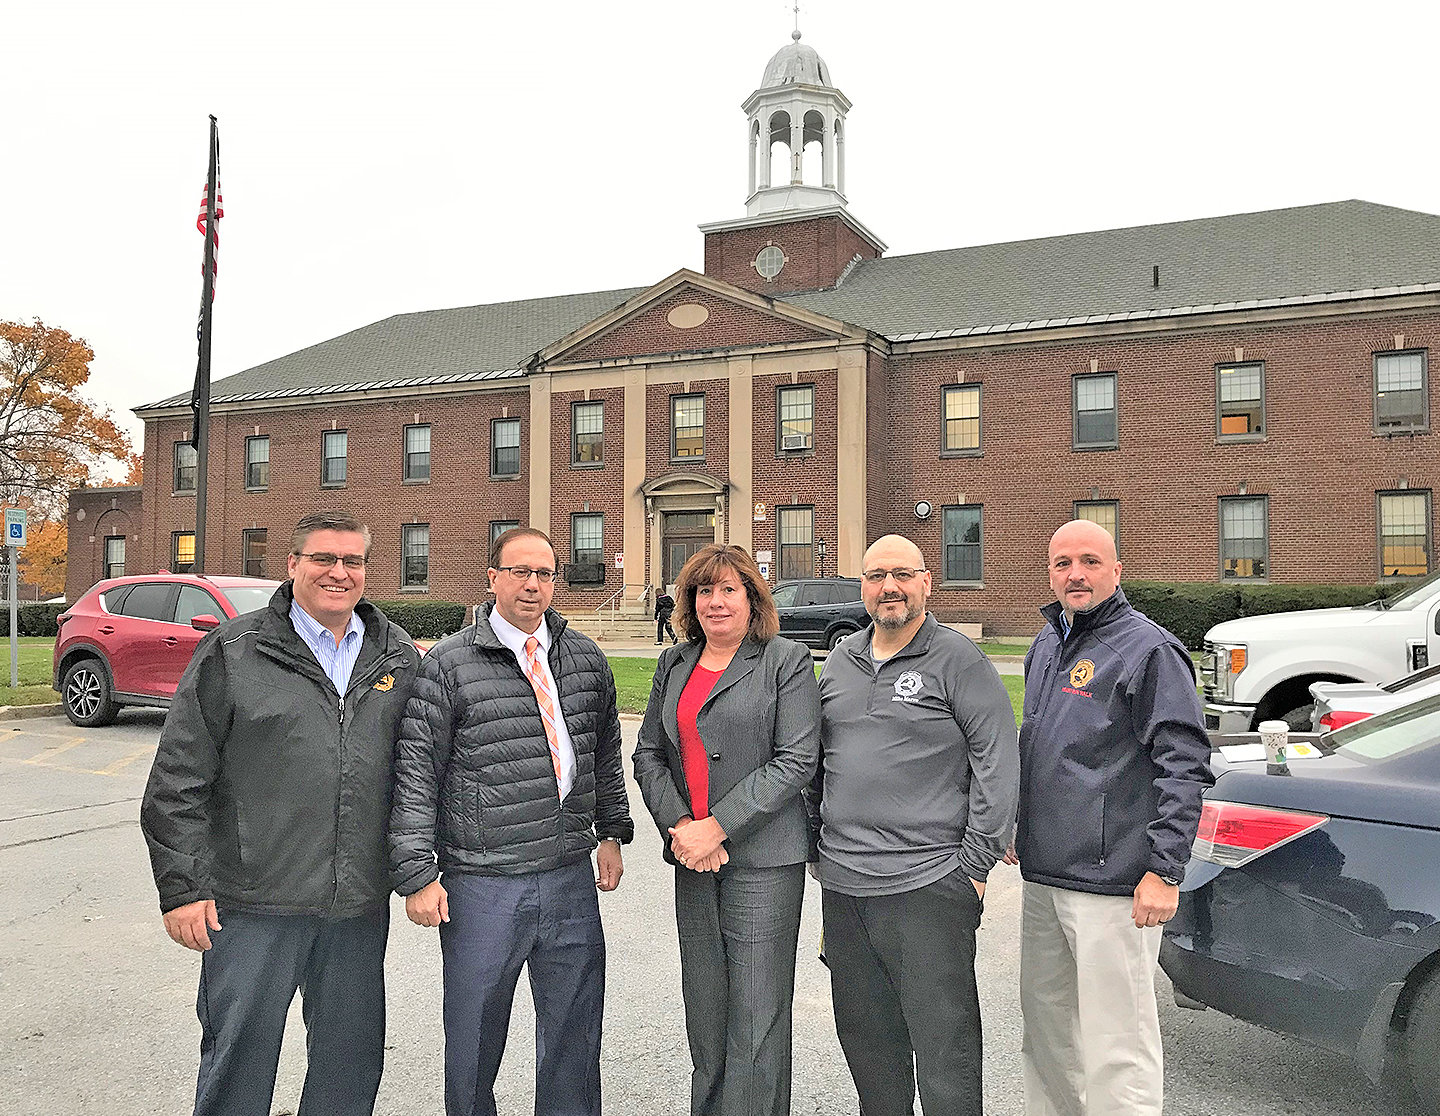 PRISON TOURS — State Senator Joseph Griffo and State Assemblywoman Marianne Buttenschon recently roured Mid-State Correctional Facility in Marcy, pictured here, as well as Mohawk Correctional Facility in Rome. From left: Scott Carpenter, regional vice president of the New York State Correctional Officers & Police Benevolent Association; Griffo; Buttenschon; Mike Marrow, NYSCOPBA staffing coordinator; and Jason Combs, NYSCOPBA business agent.